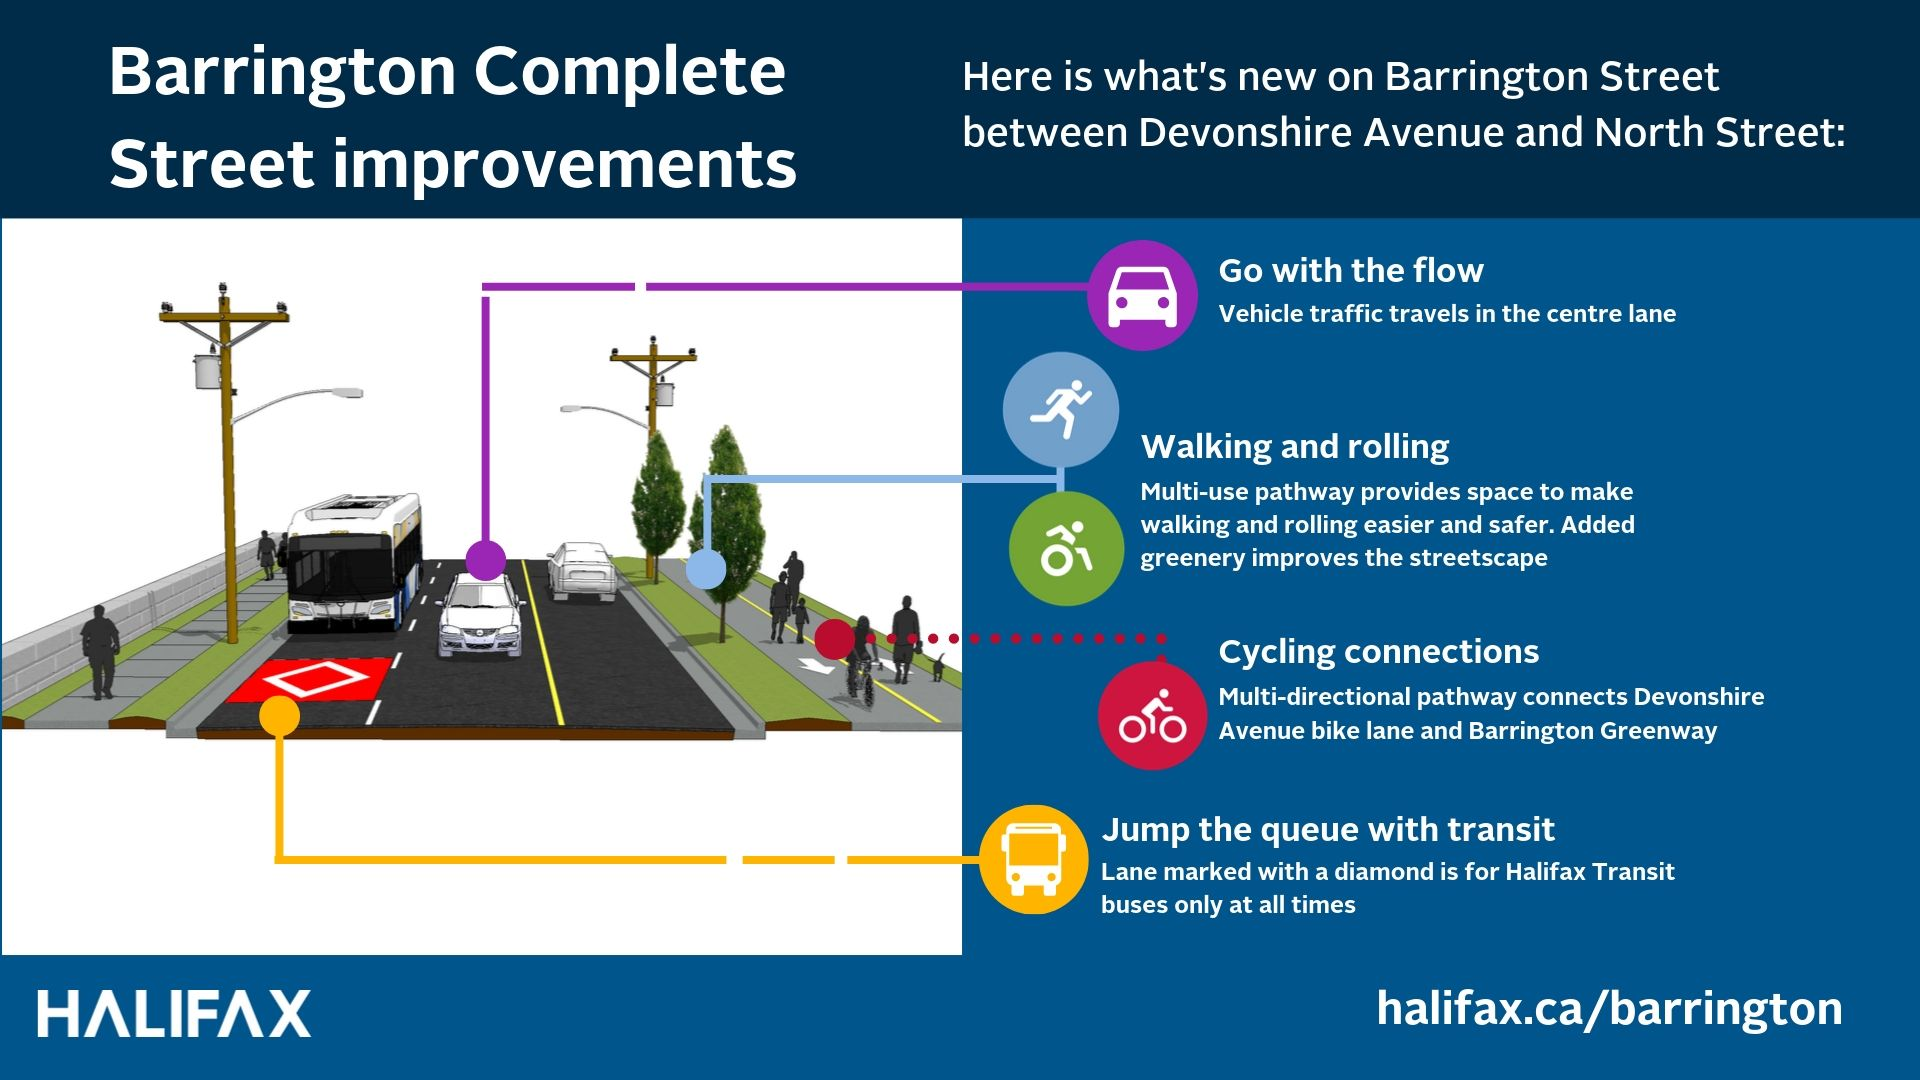 neNew bus-only lane and multi-use pathway on Barrington Street is now complete.